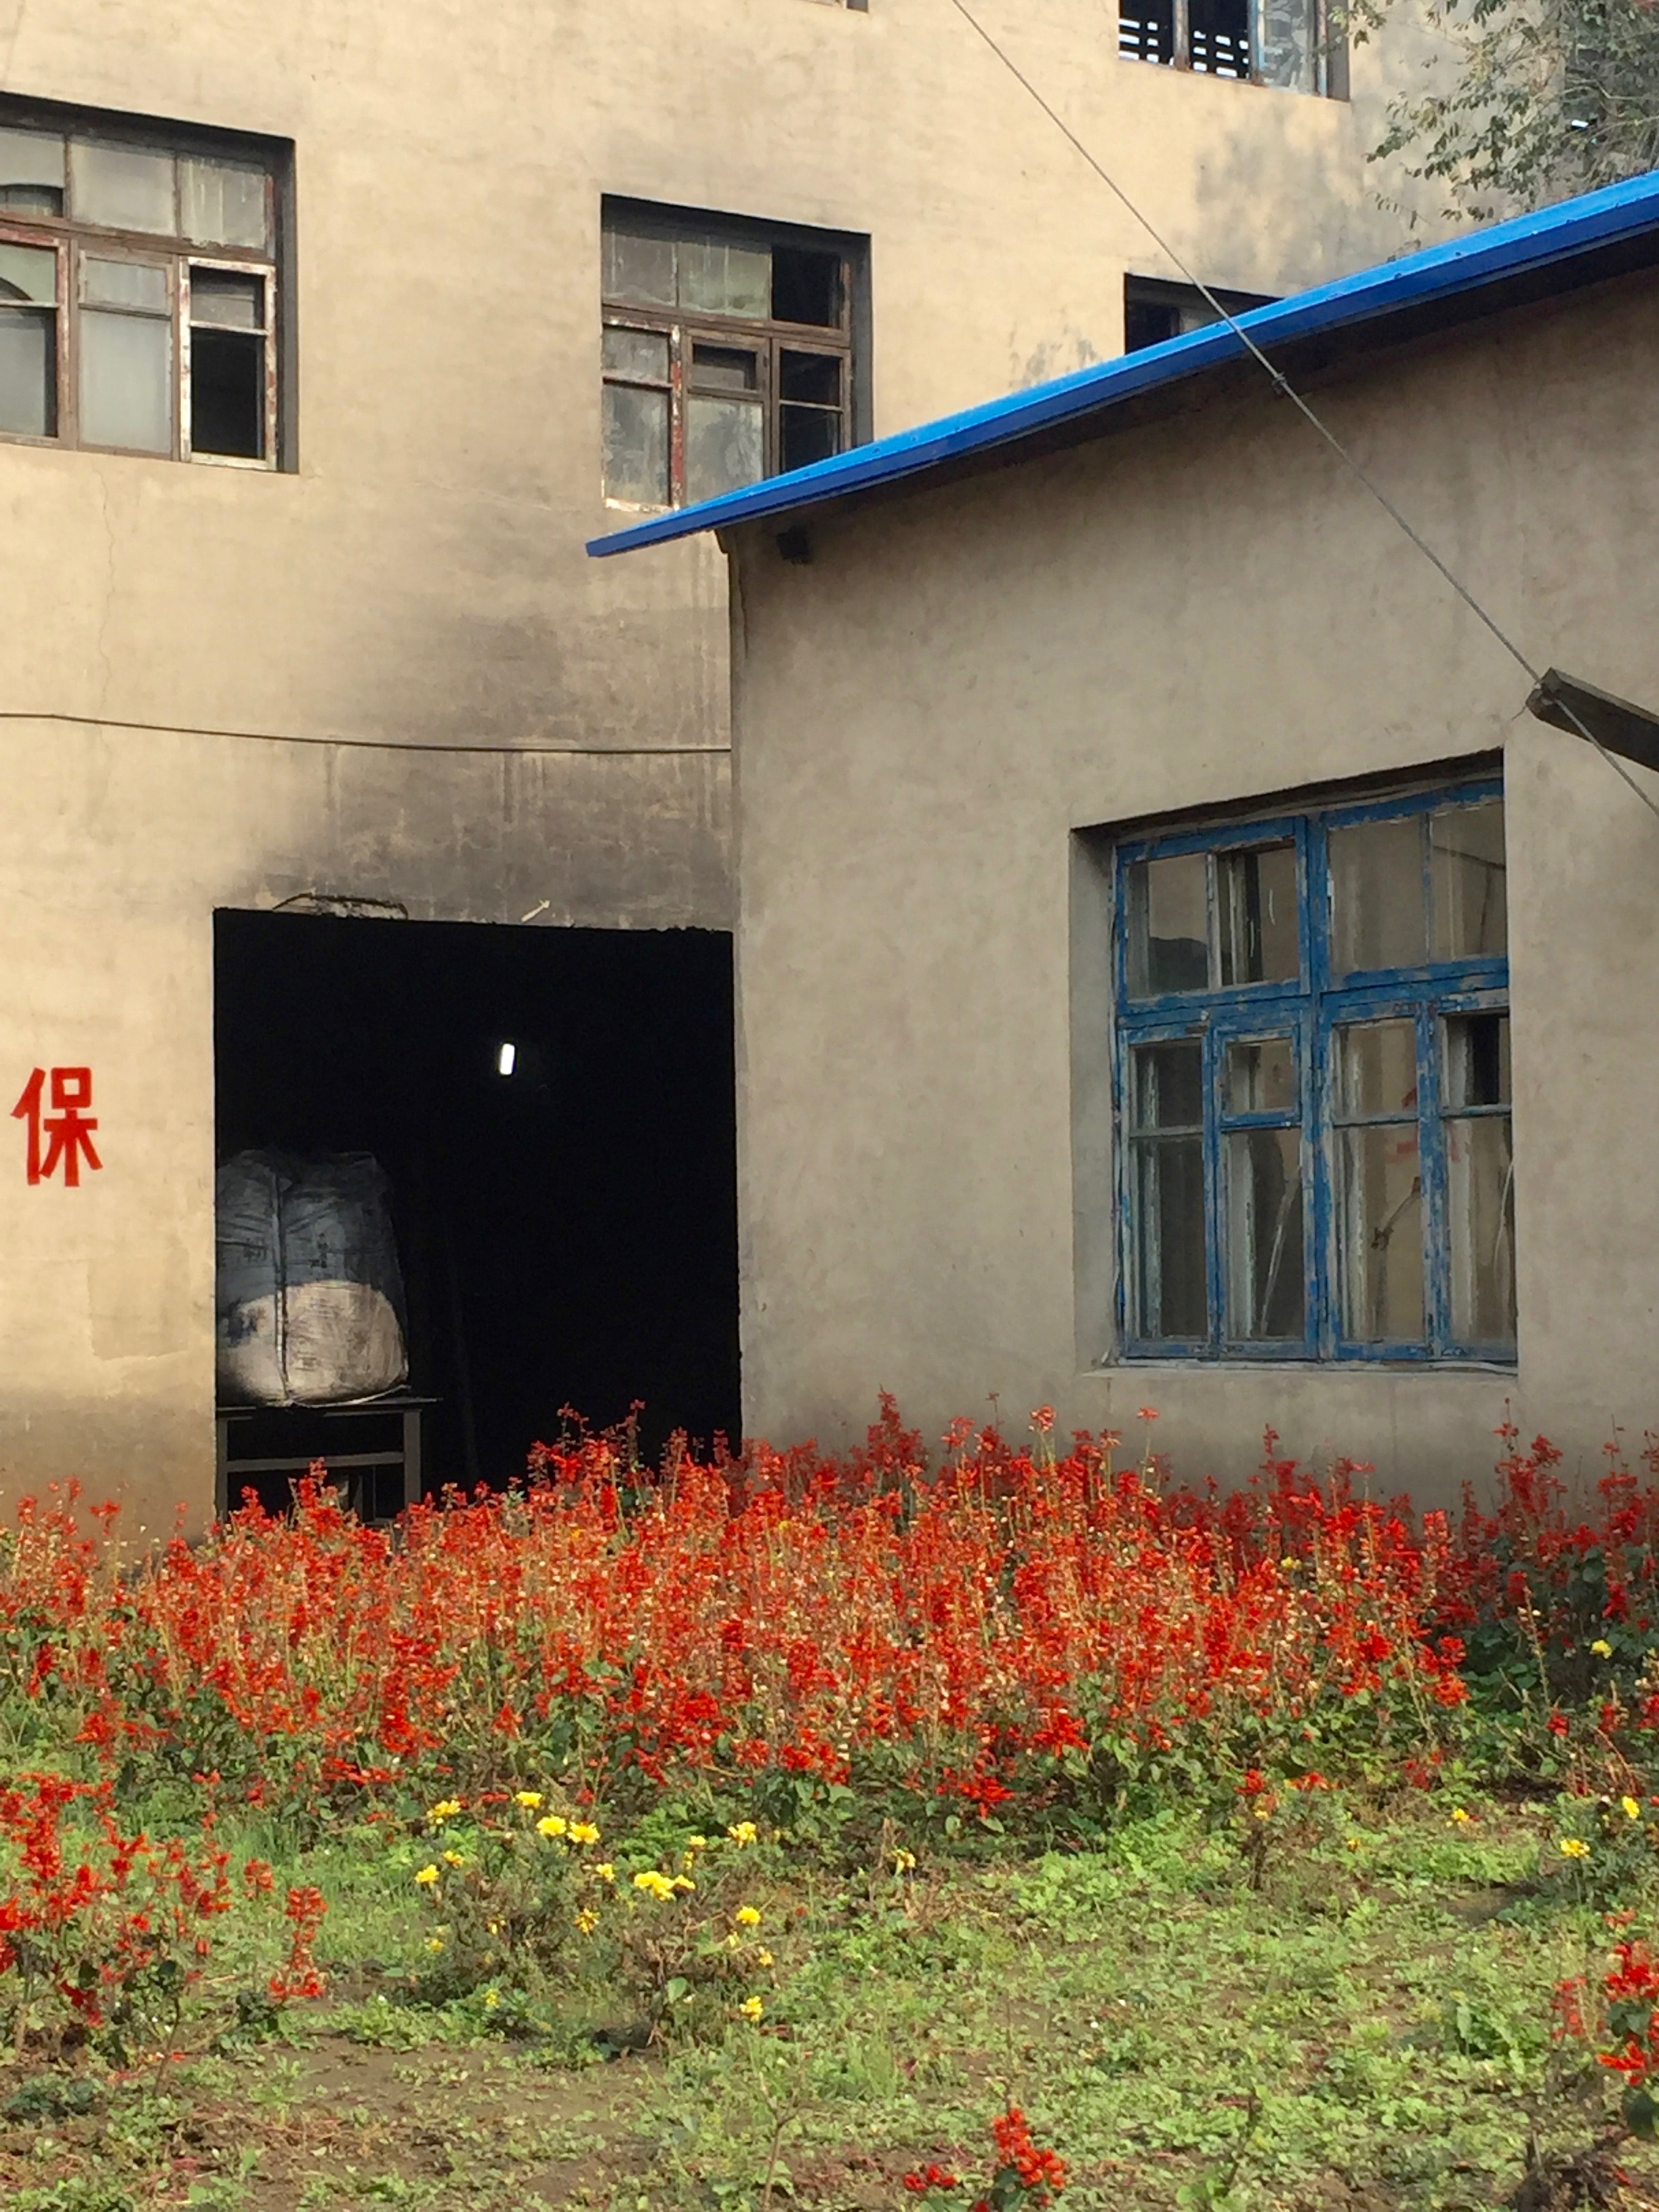 Contrast of the dirty coal room and red flowers.